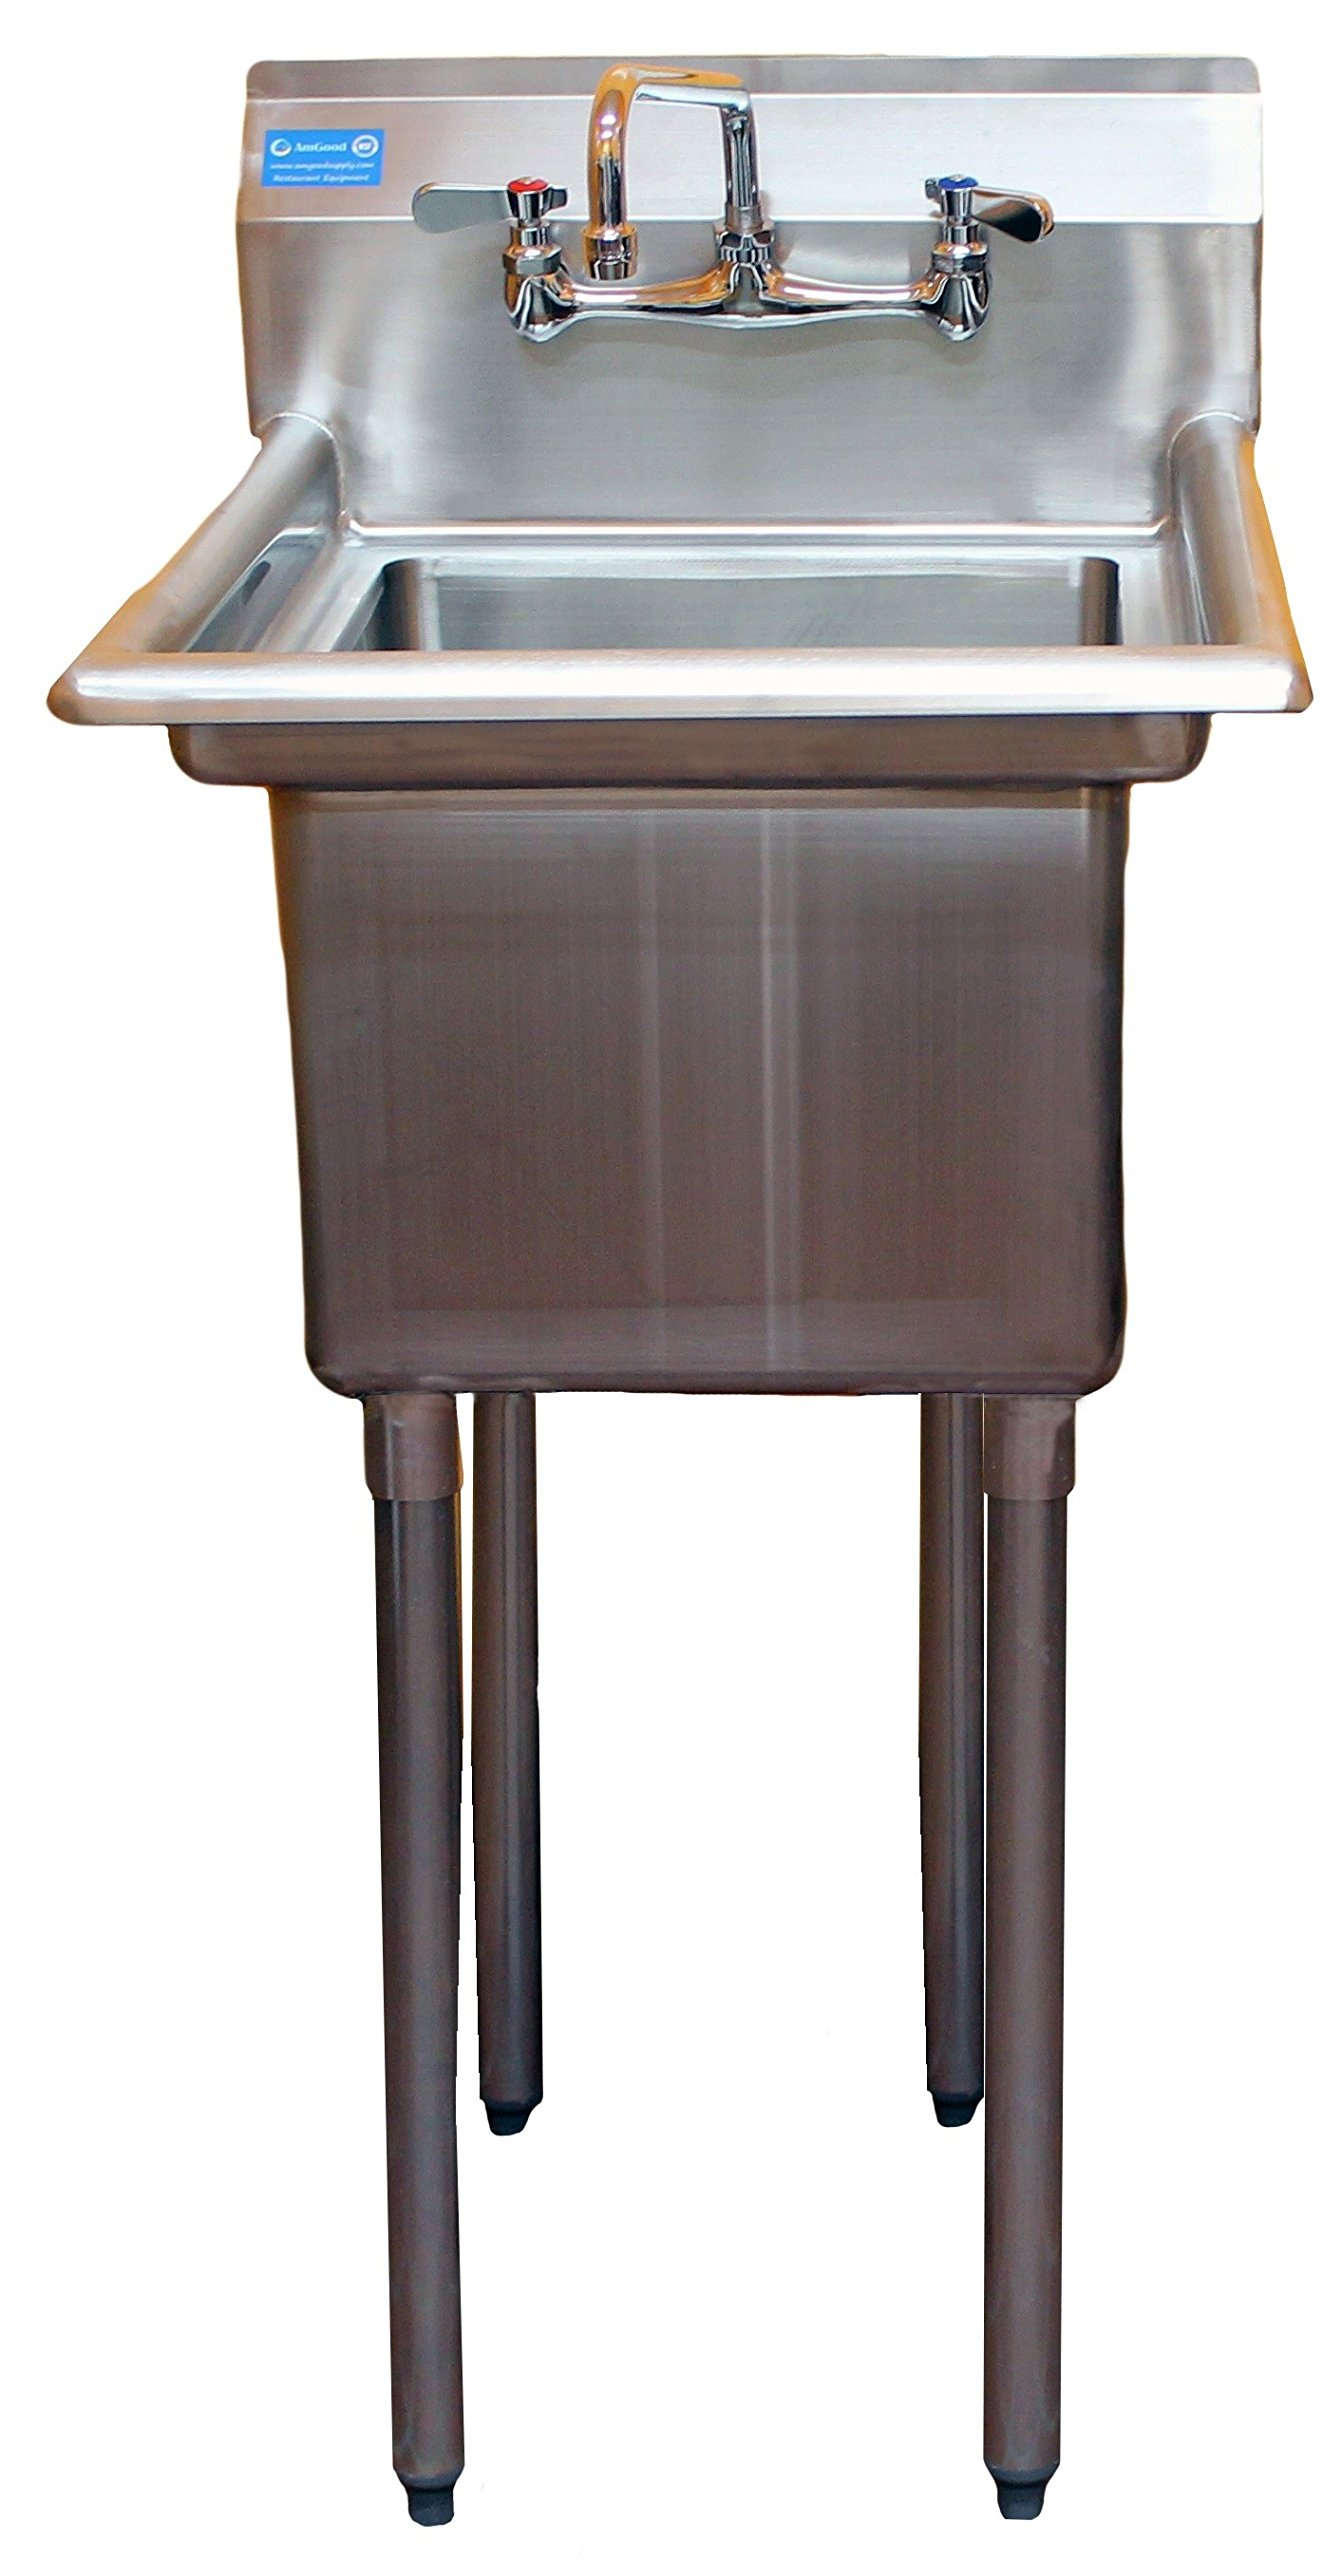 Get Quotations · AmGood Commercial Stainless Steel Sink   1 Compartment  Restaurant Kitchen Prep U0026 Utility Sink With 10